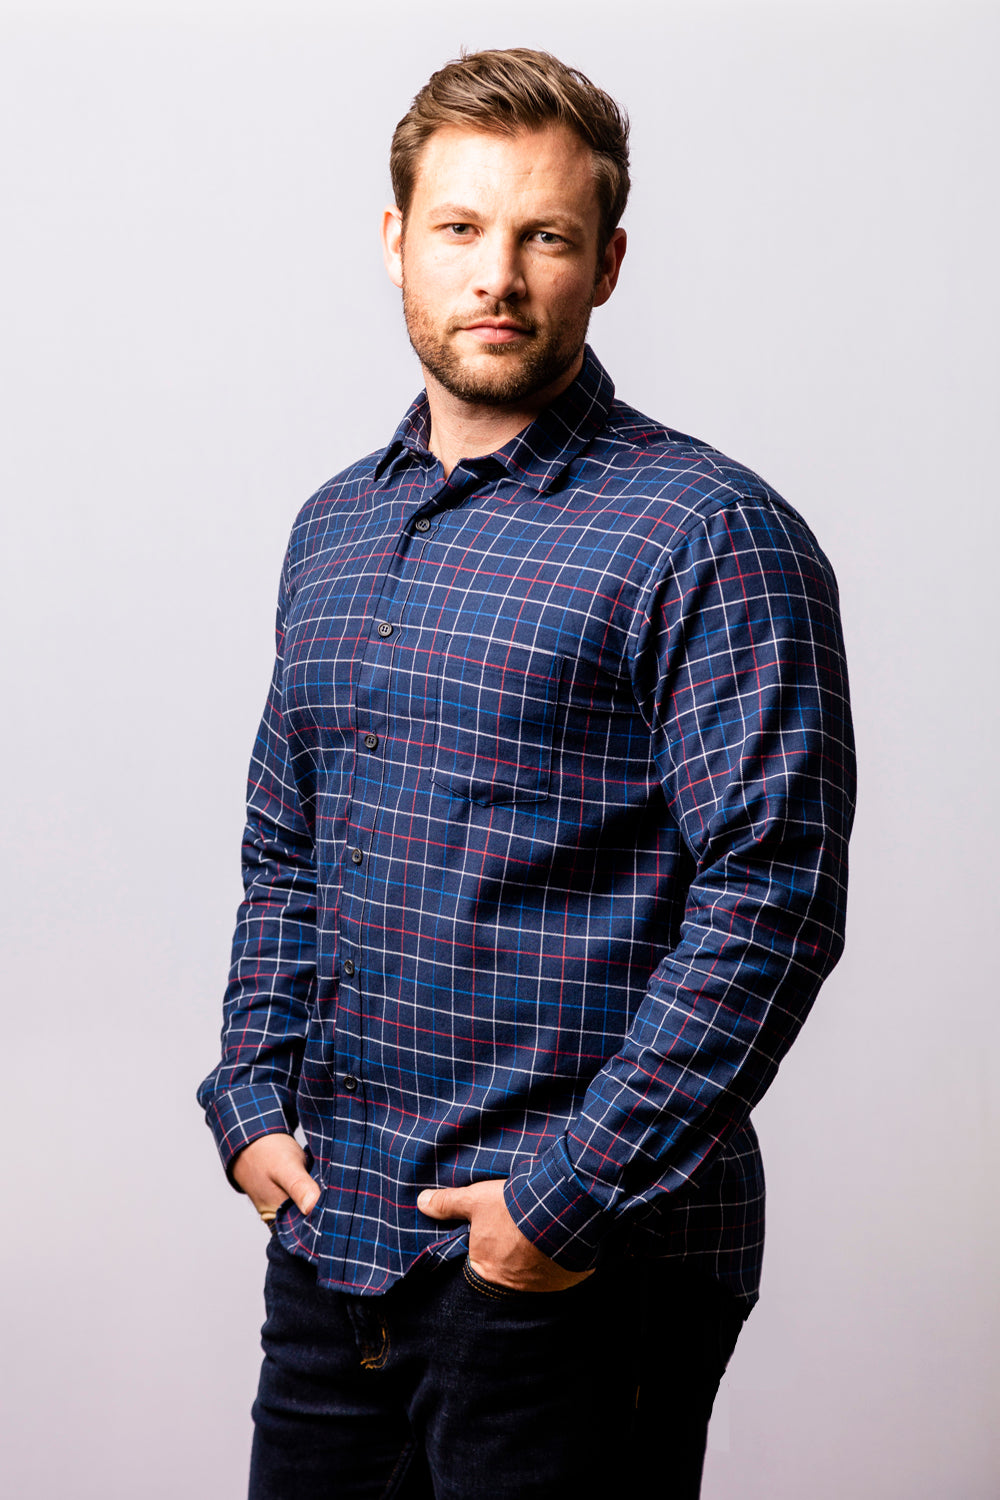 Navy Blue Windowpane Brushed Cotton Shirt - Jason  Size XL Available